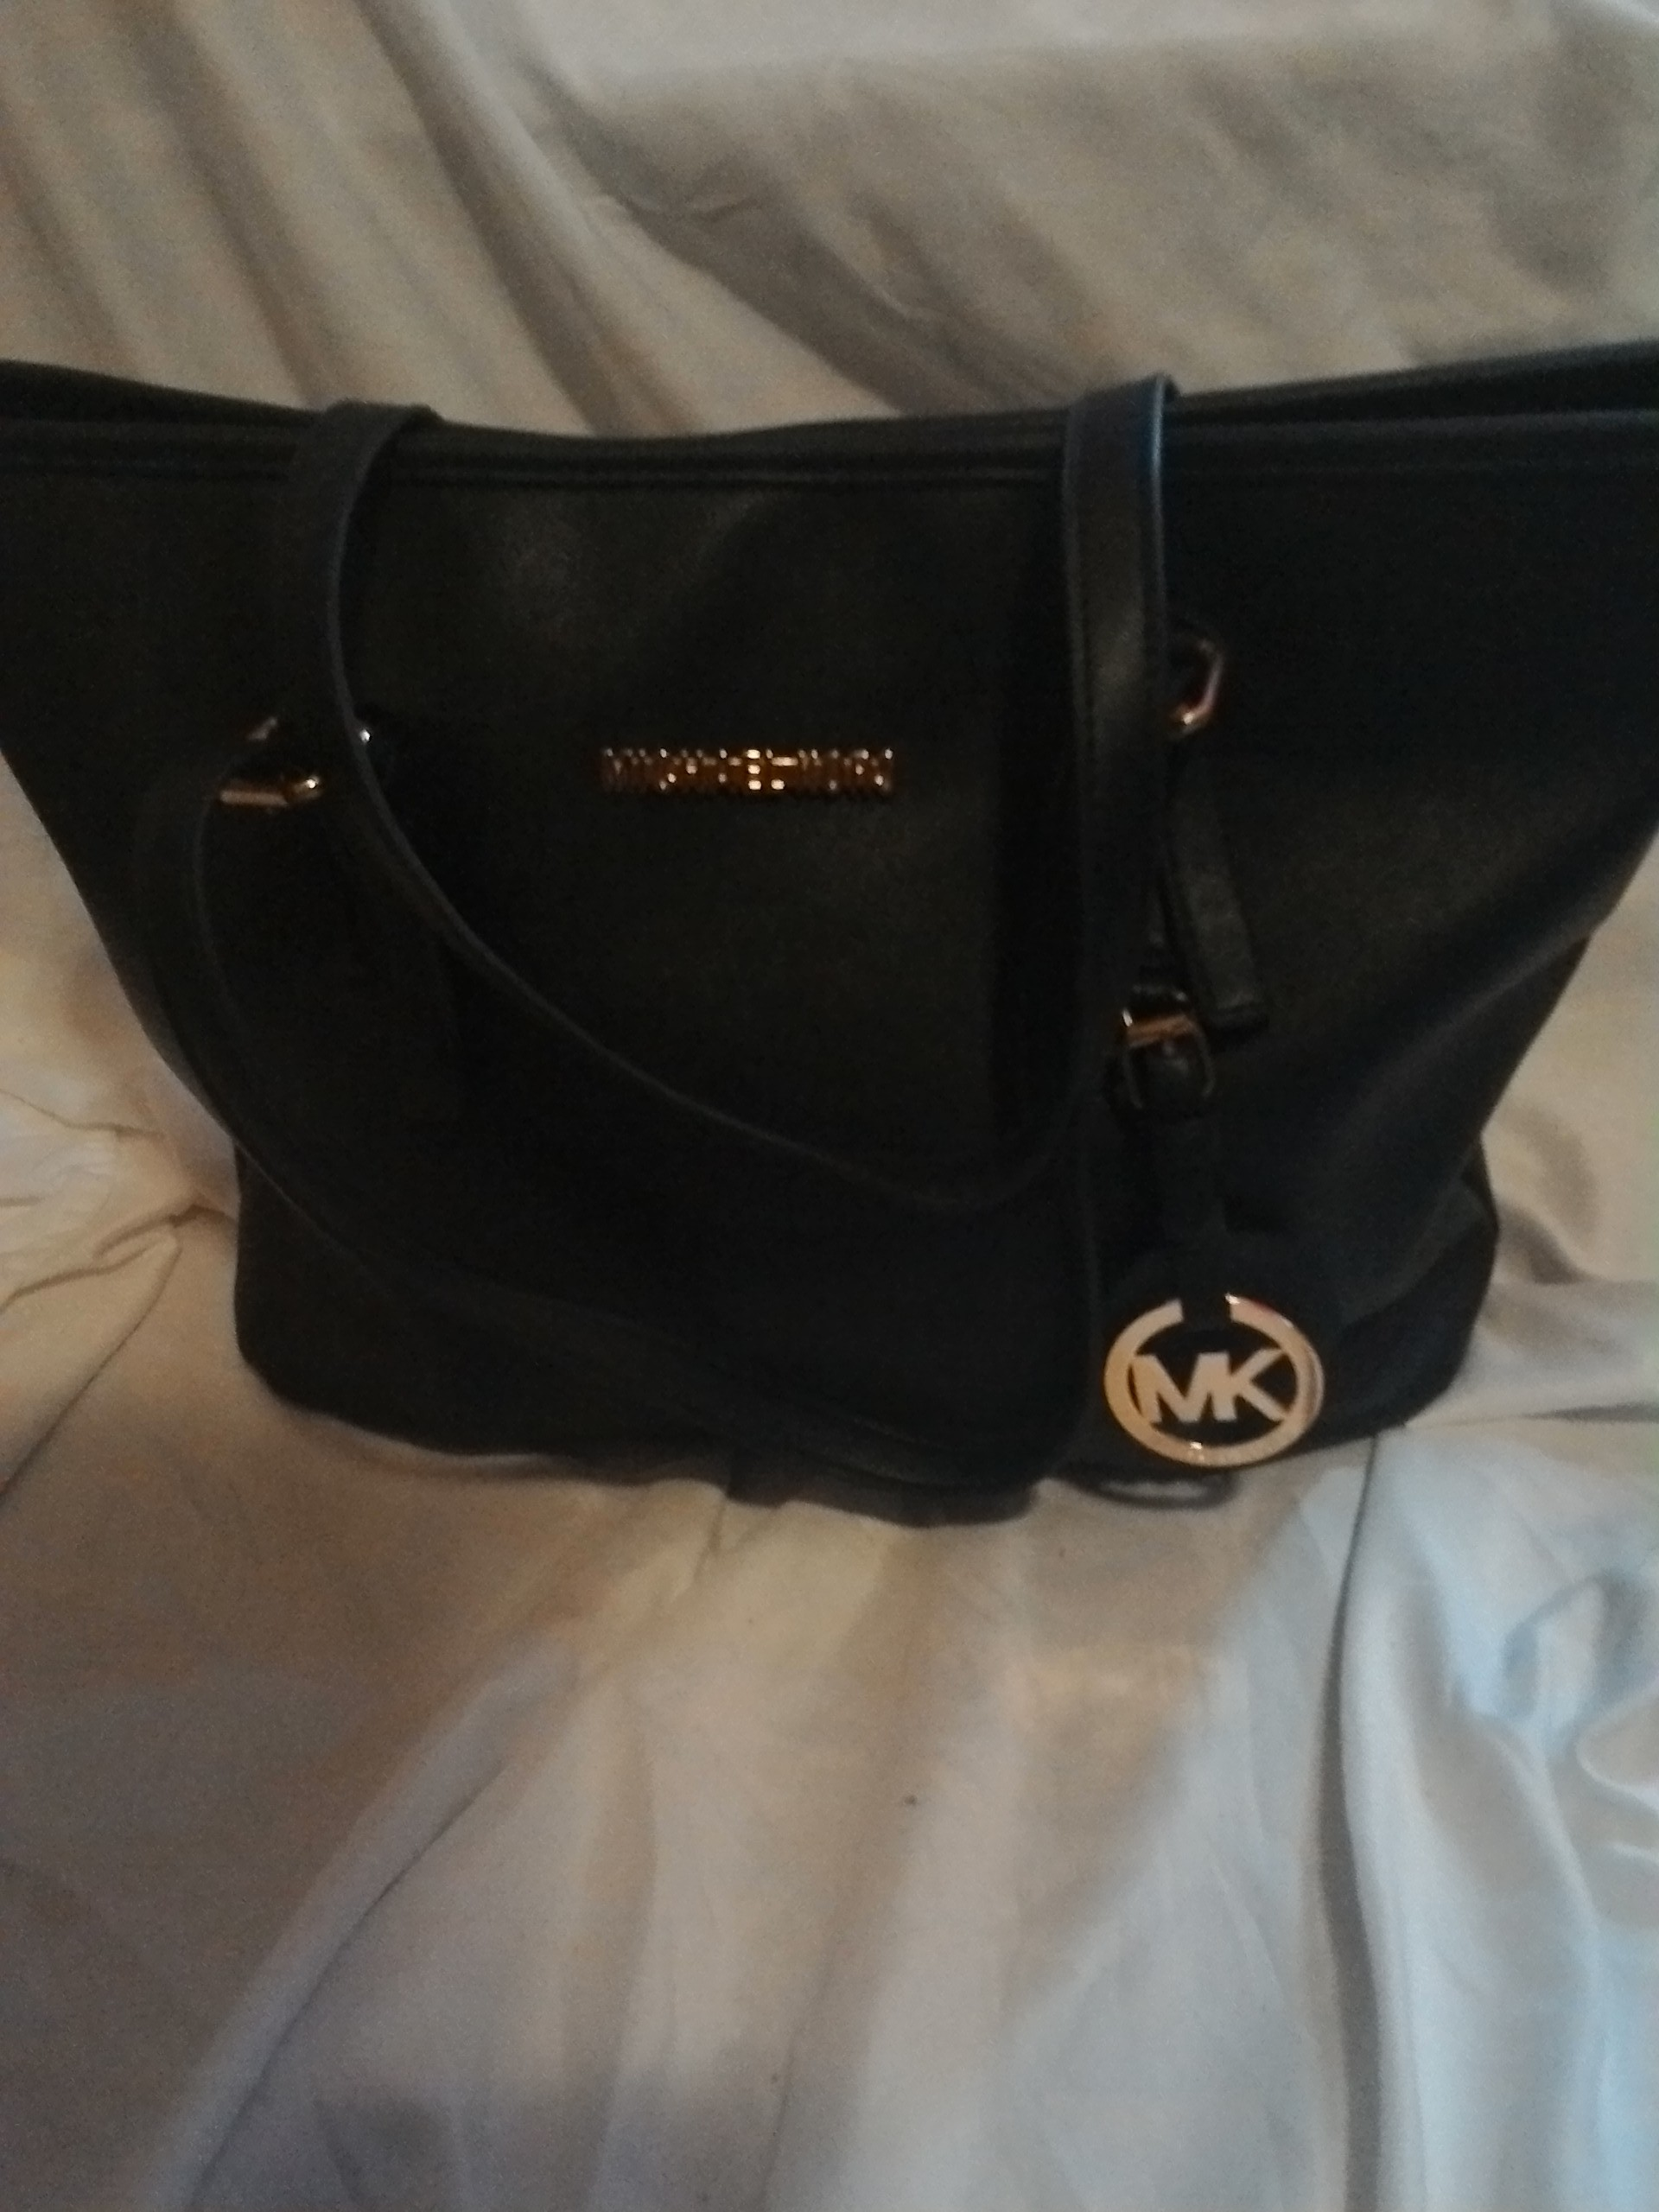 678af16b7532 Loanables Michael Kors Purse Rental located in Hempstead